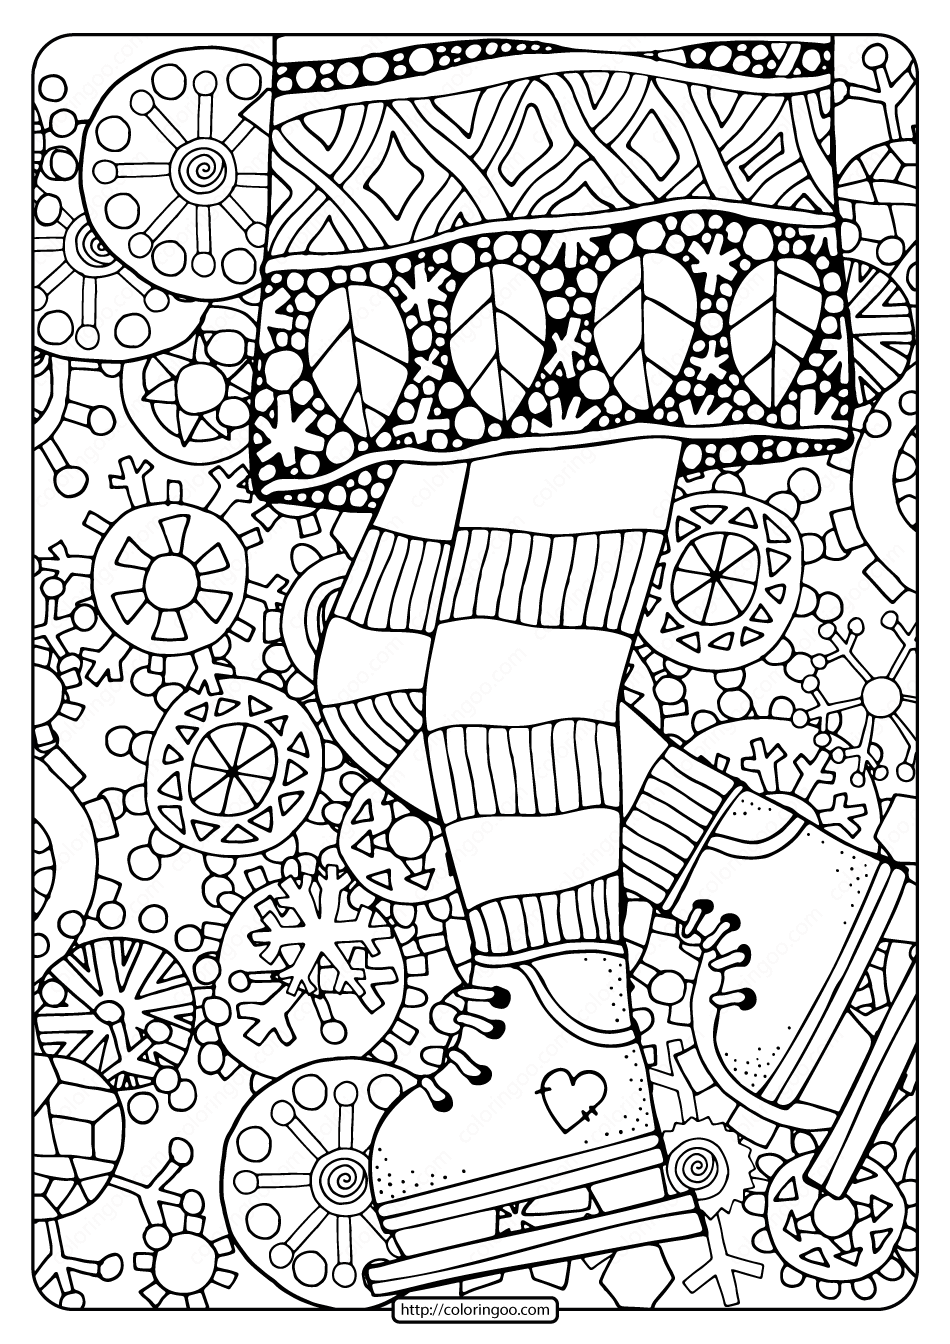 Girl on Ice Skates with Snowflakes Coloring Page